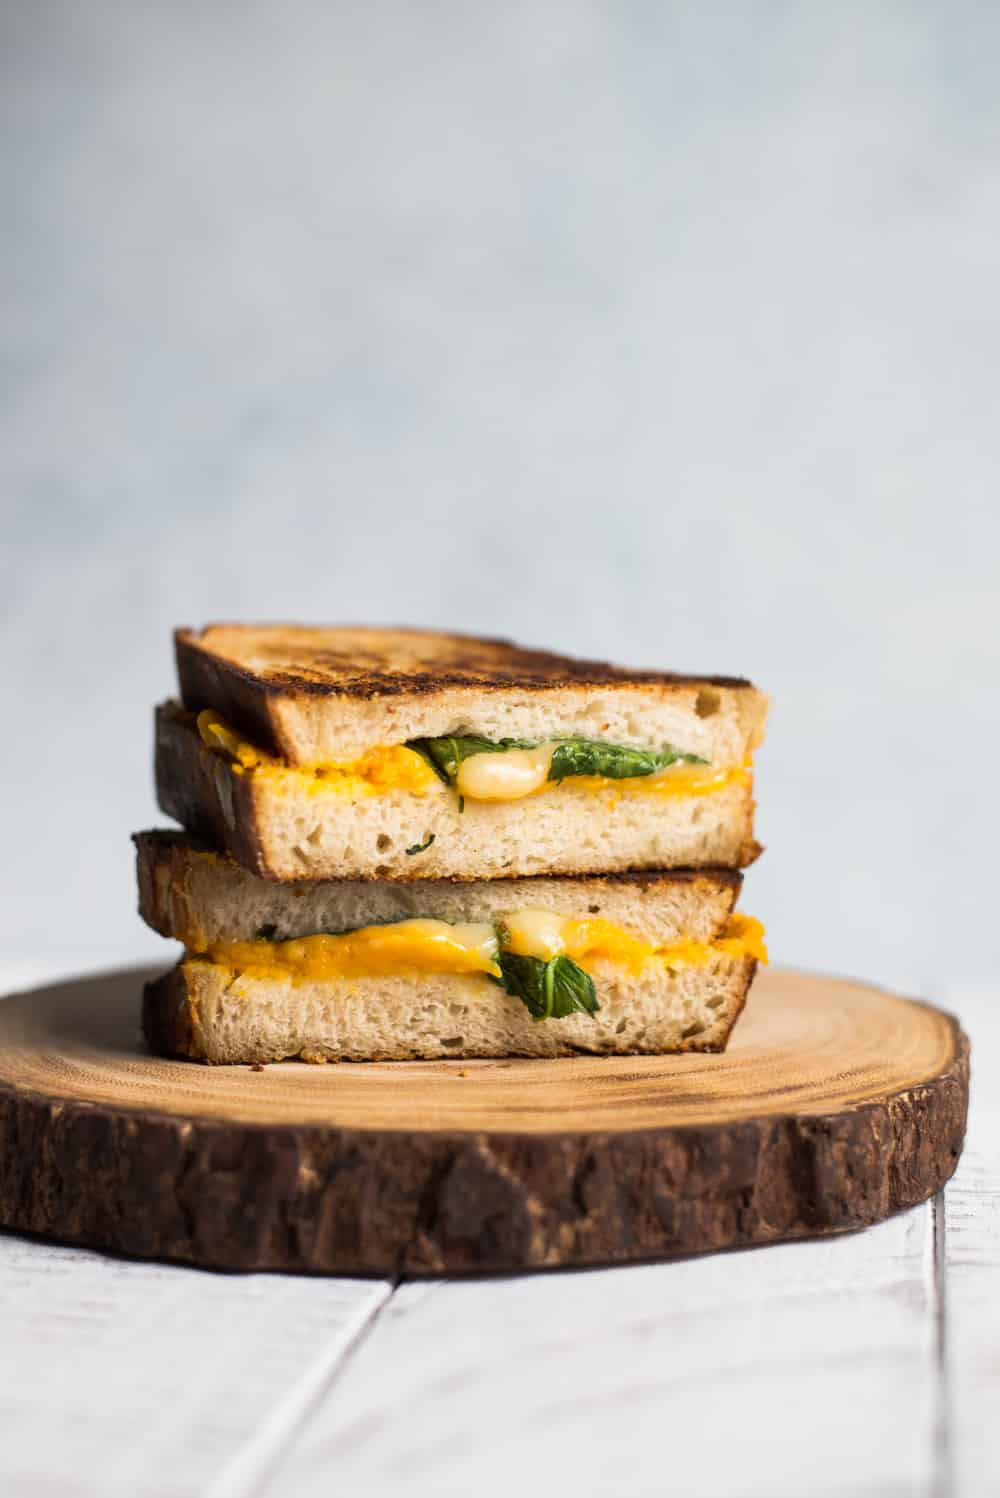 Spinach, Roasted Garlic & Butternut Squash Grilled Cheese Sandwiches